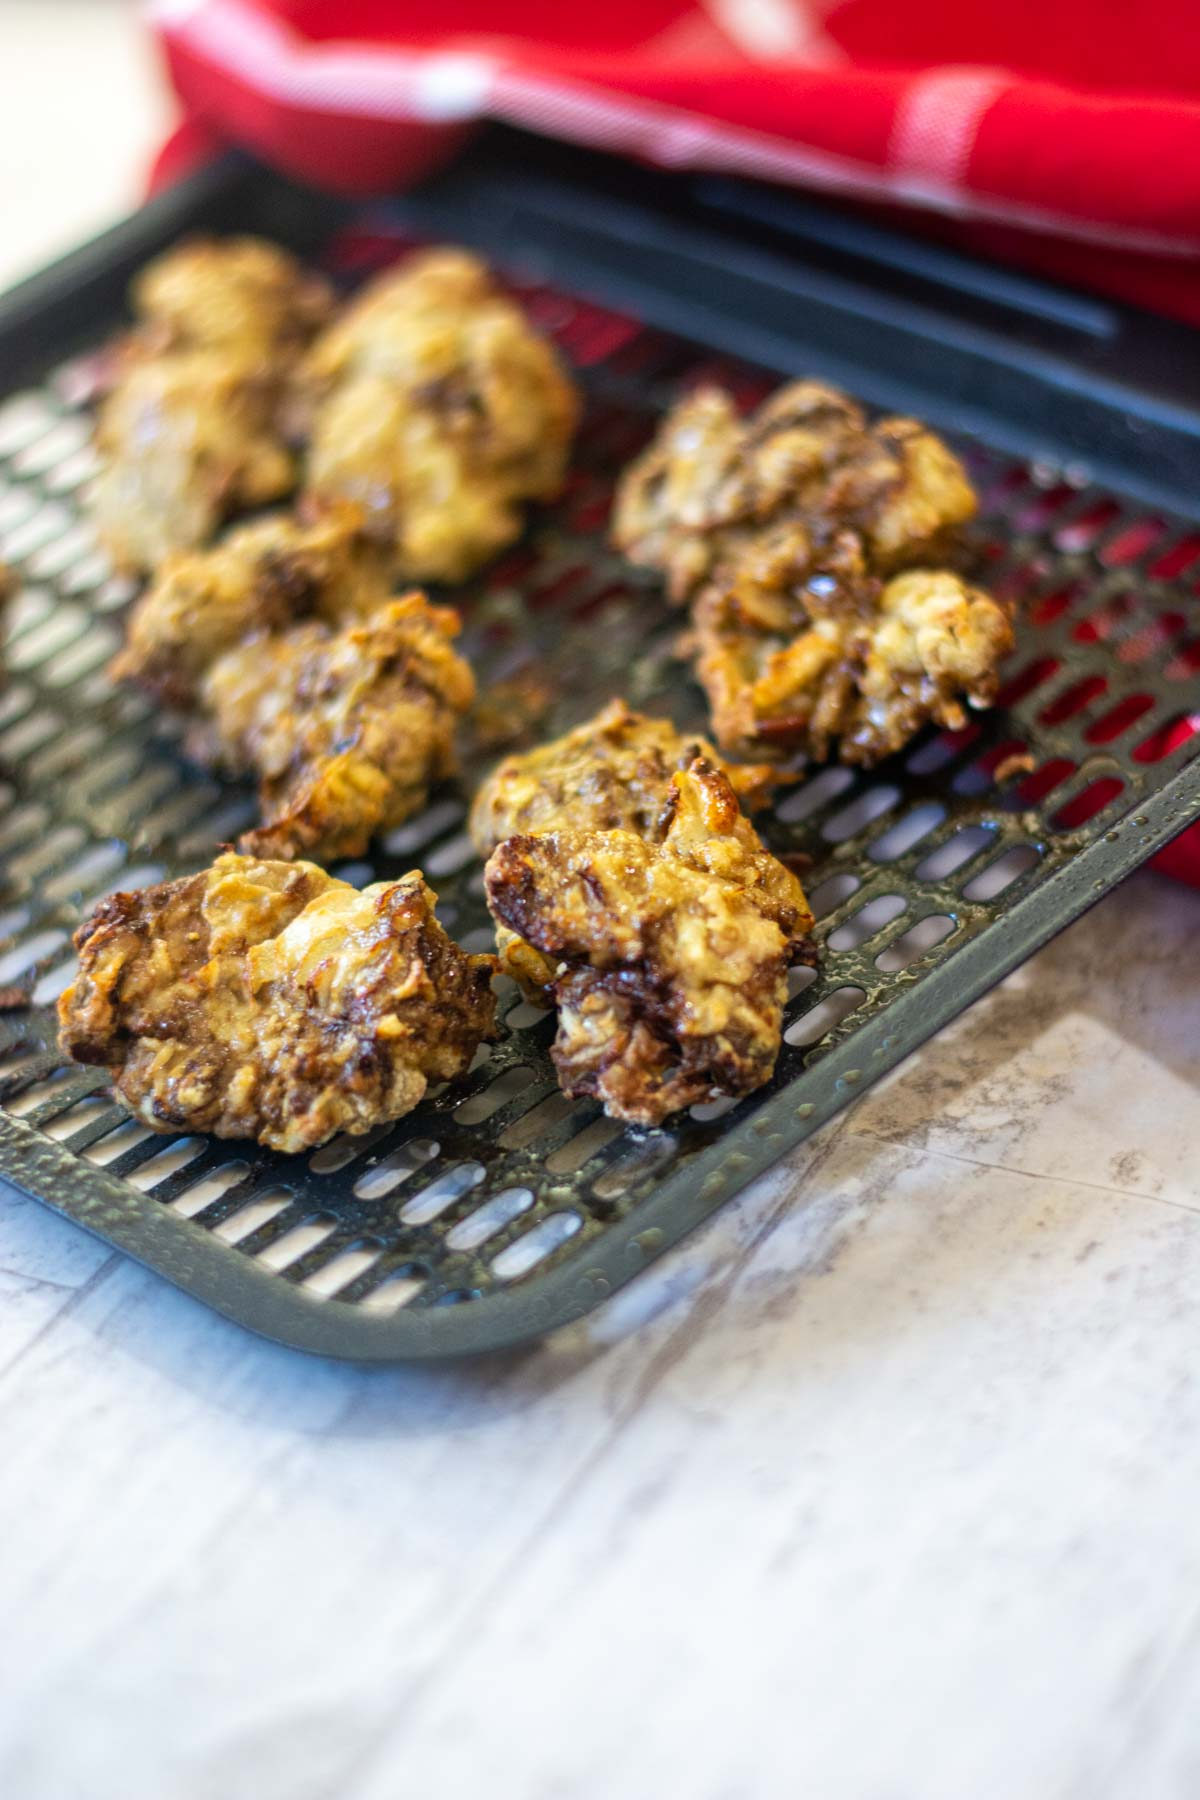 chicken livers on an air fryer tray that are perfectly cooked.